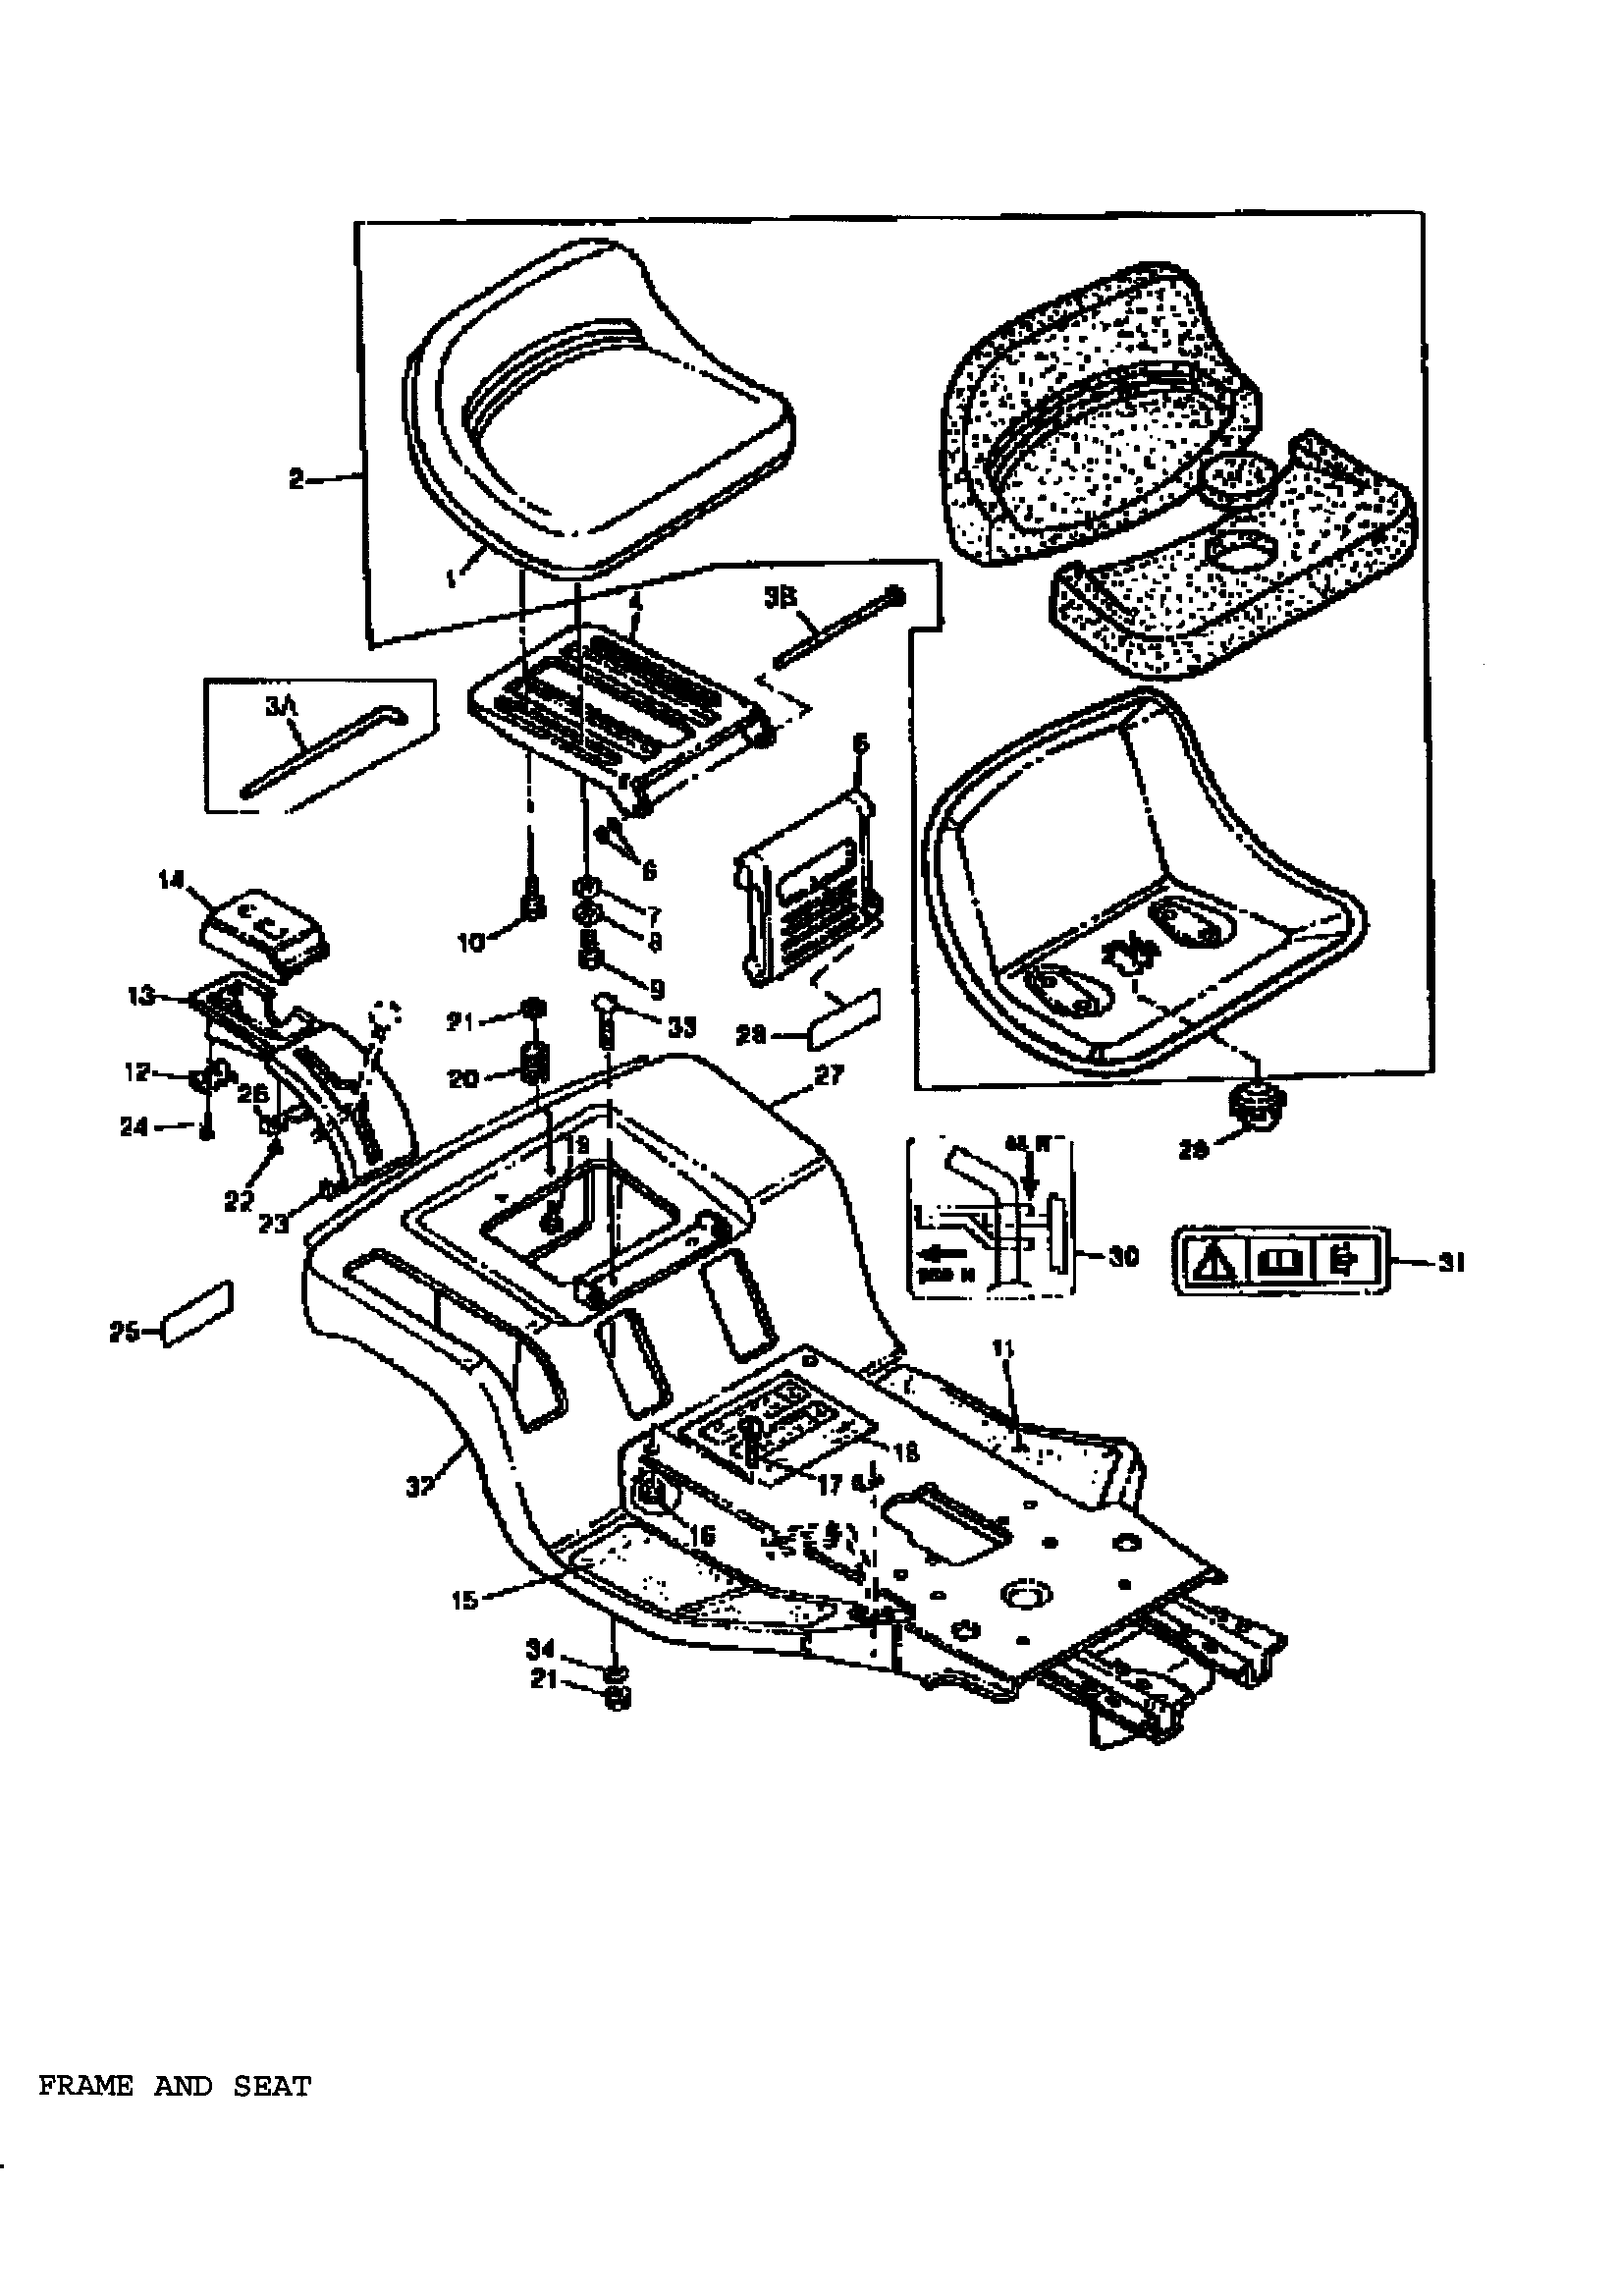 FRAME AND SEAT Diagram & Parts List for Model